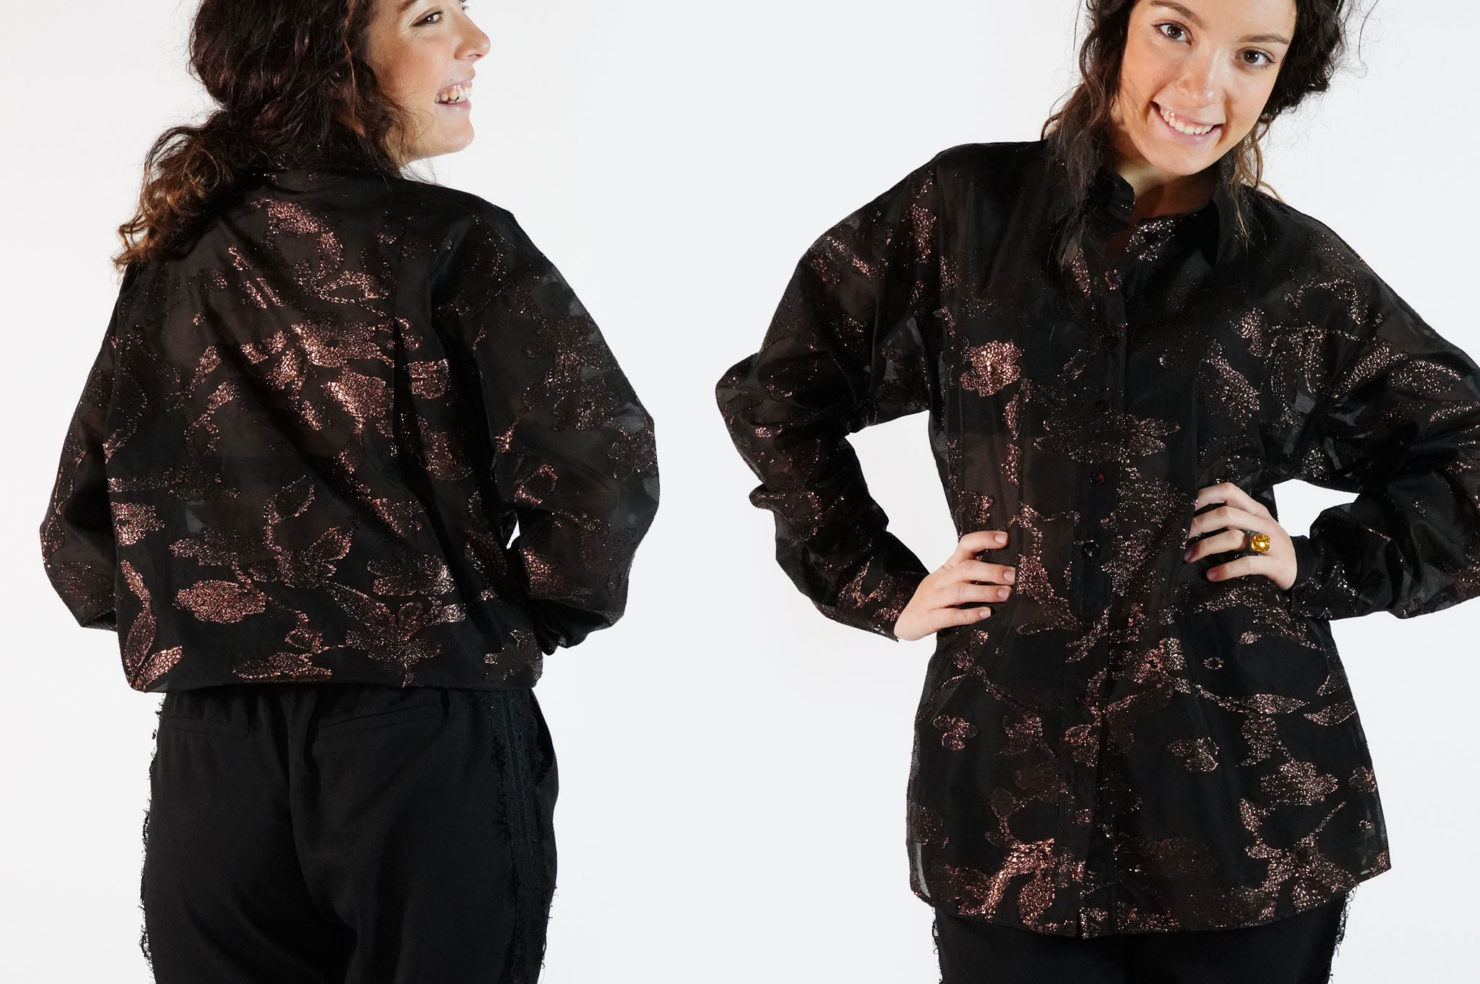 LONG SLEEVES BOXI SHIRT BLACK-BRONZE LUREX - VANDA CATUCCI